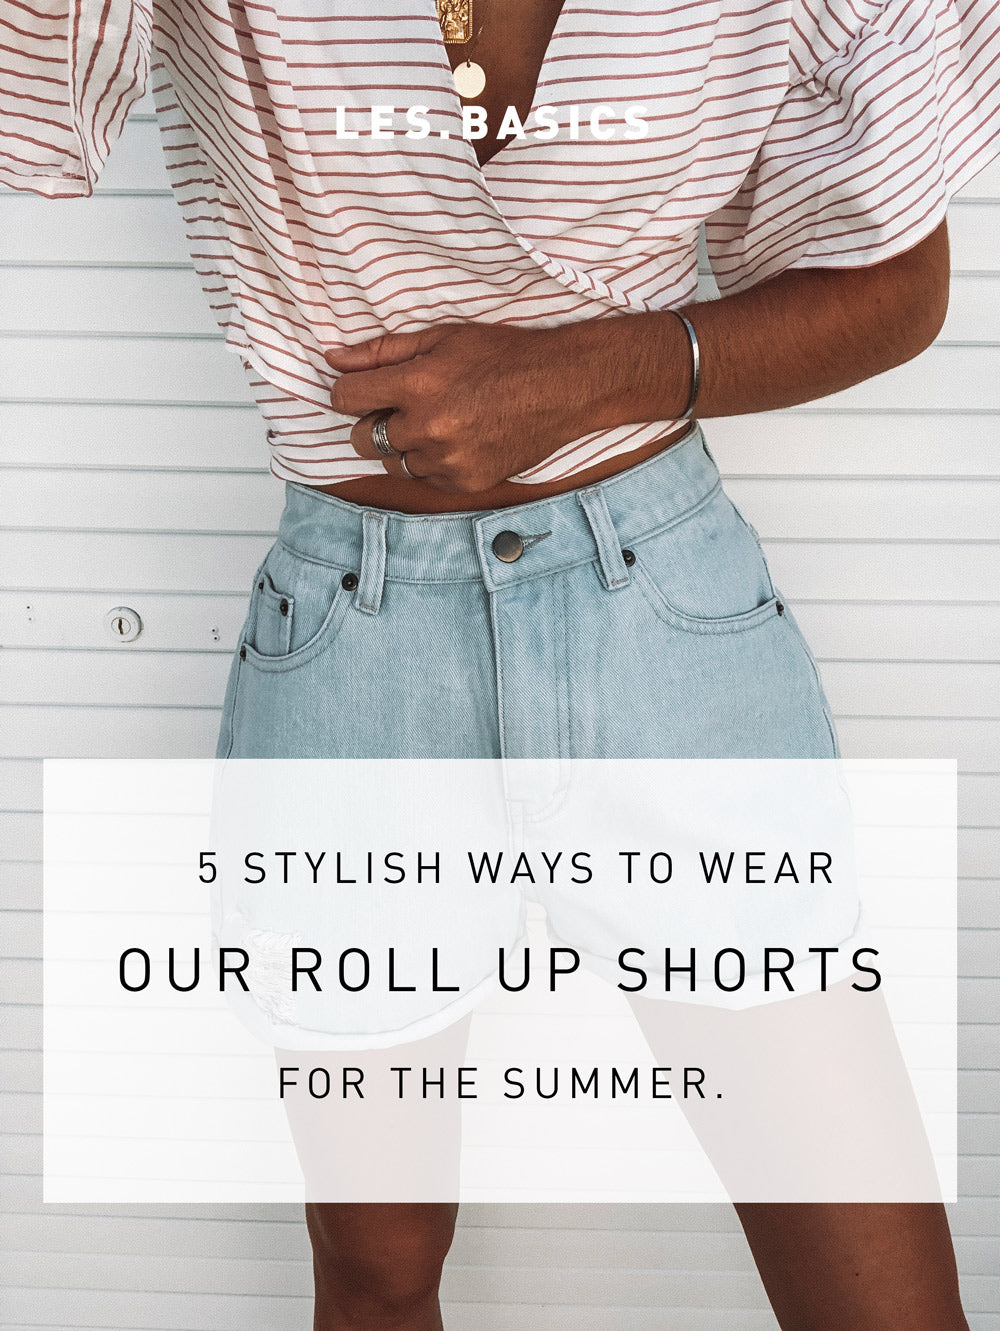 5 STYLISH WAYS TO WEAR DENIM SHORTS